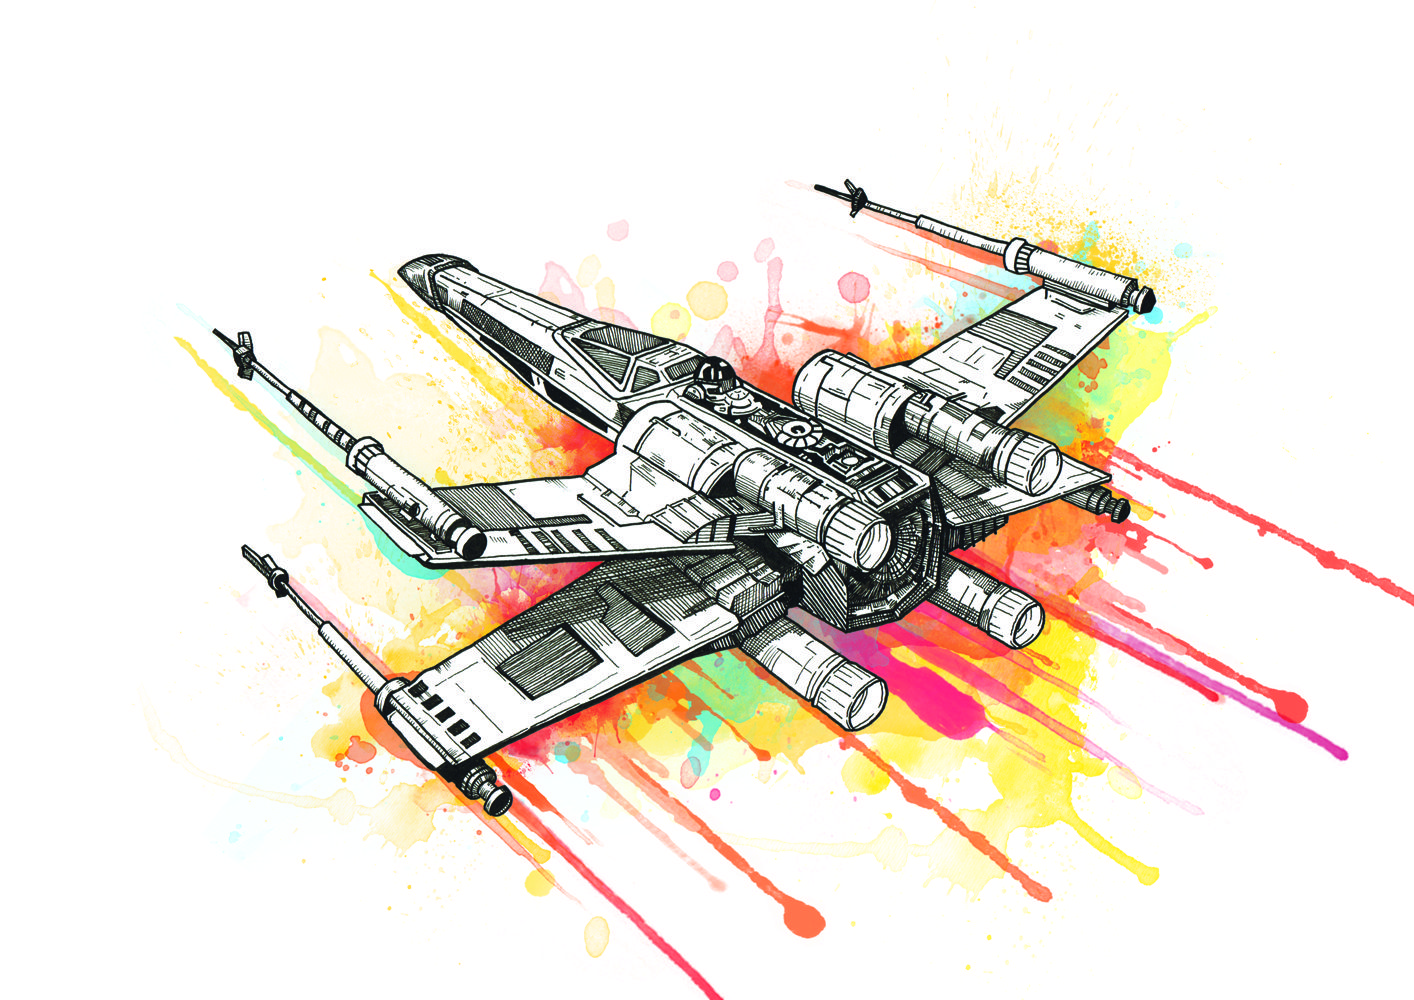 Star wars x wing spacecraft watercolour pen and ink illustration